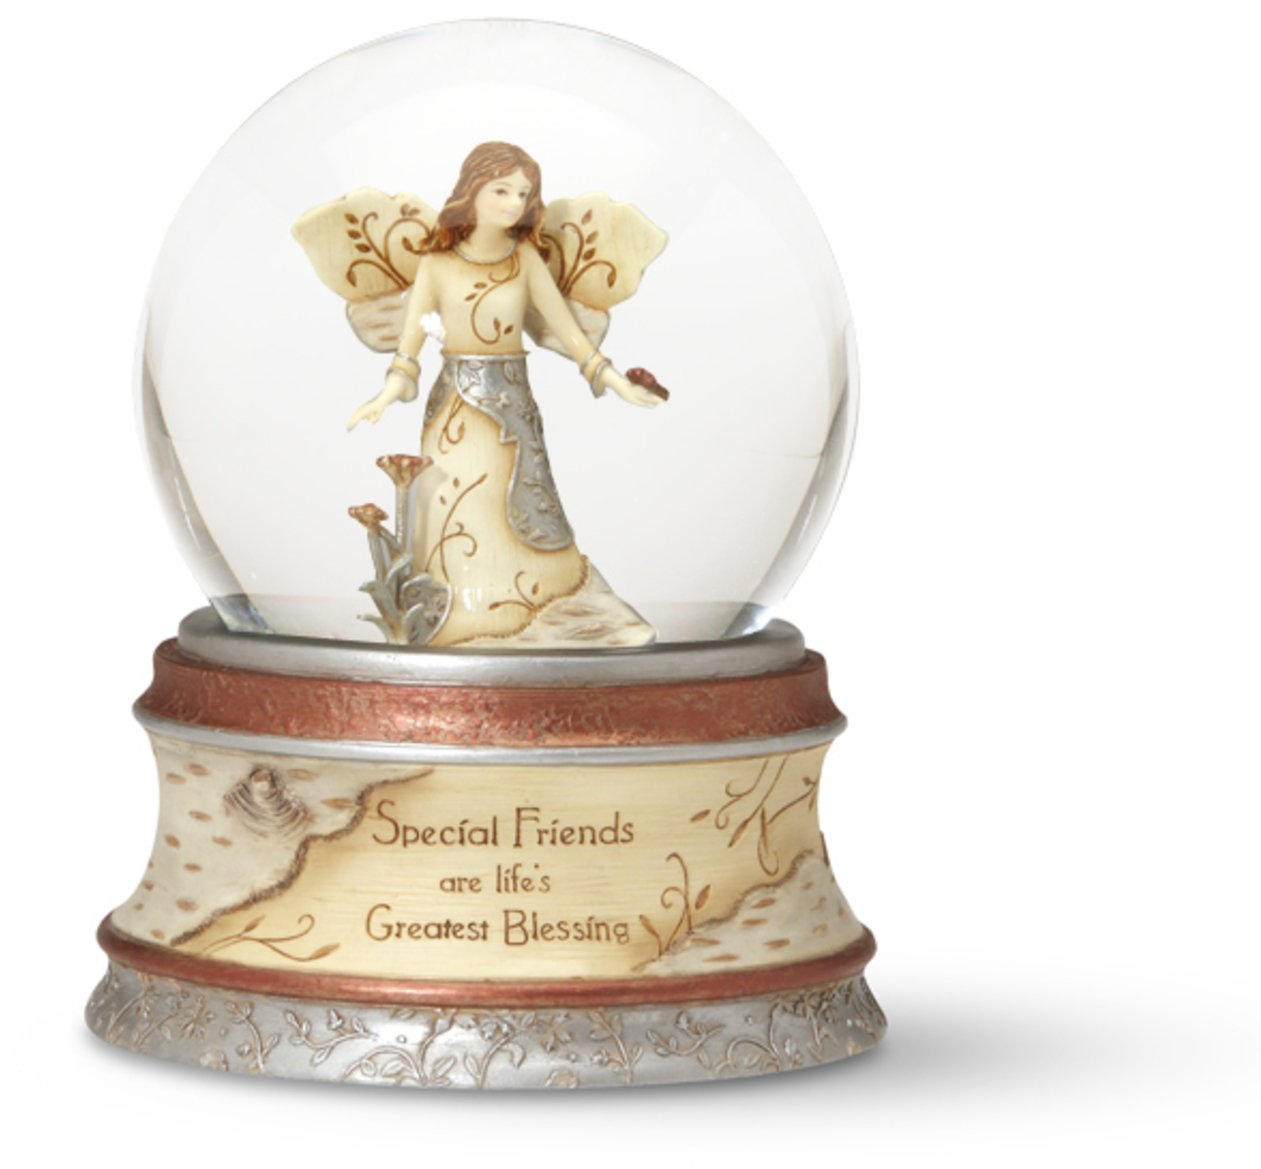 Pavilion Gift Company Elements Special Friends 100 mm Musical Waterglobe with Tune -Inch That's What Friends Are For-Inch by Pavilion Gift Company